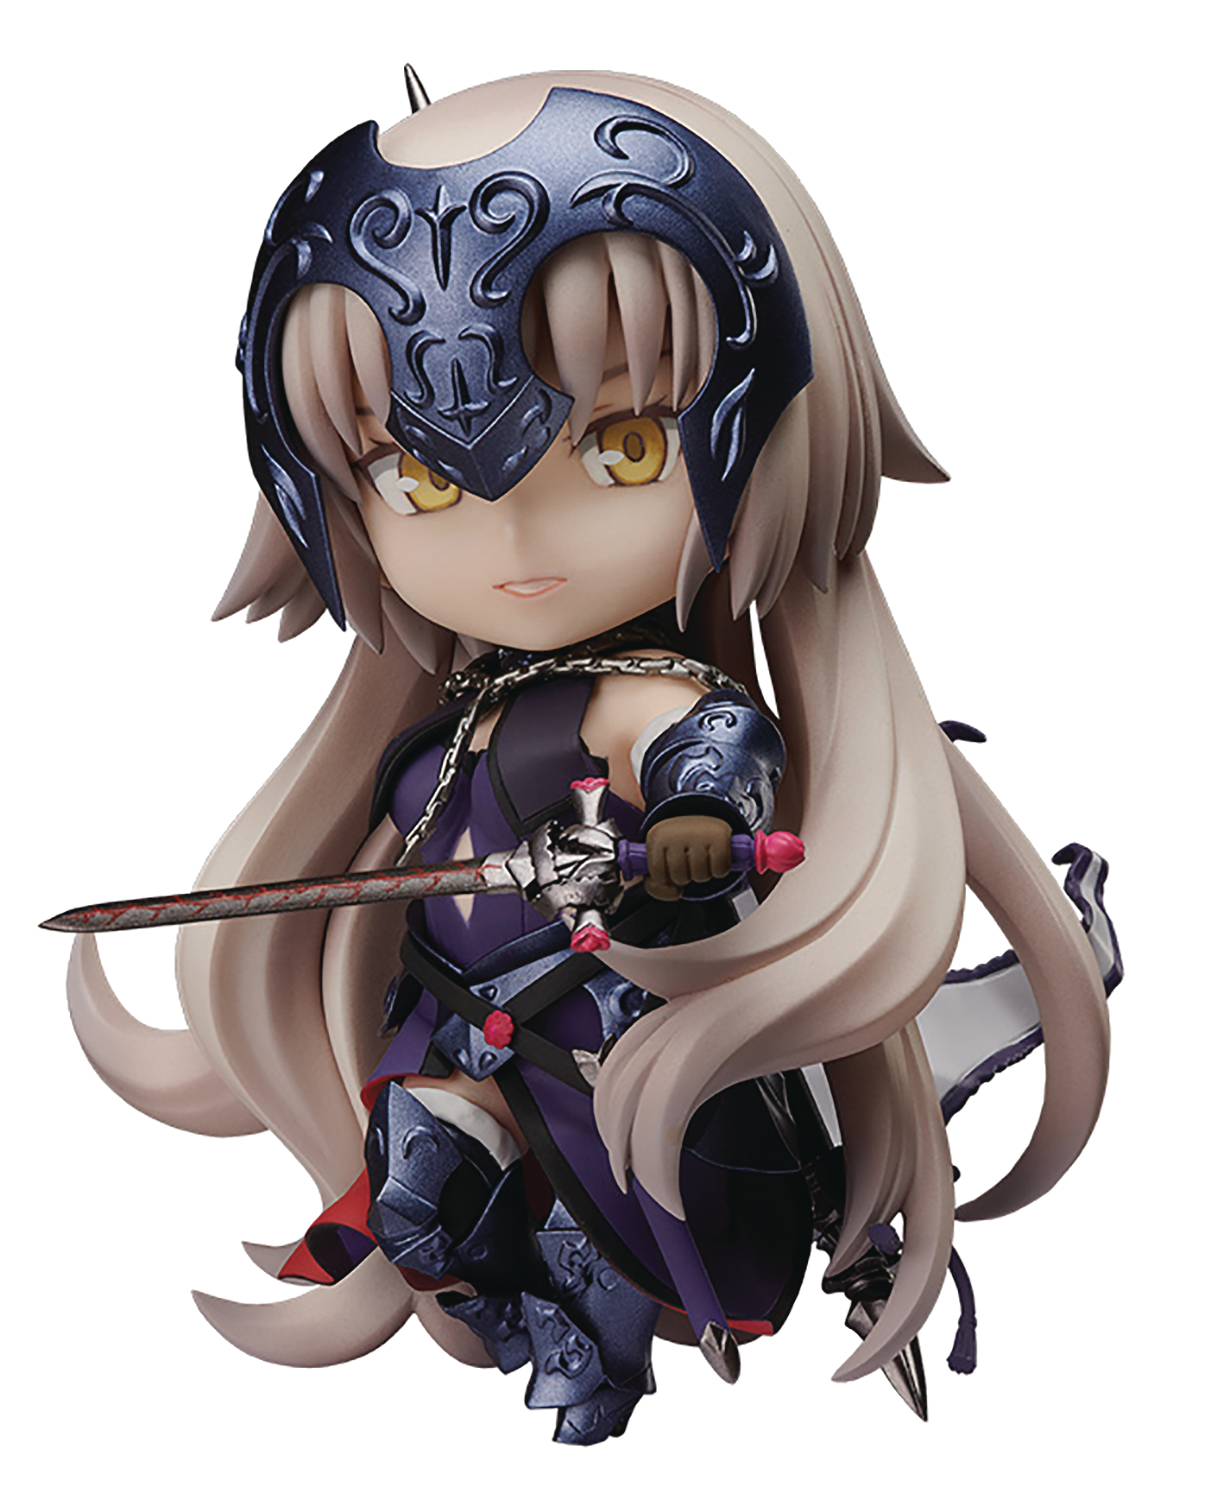 CHARA-FORME BEYOND FATE GRAND ORDER AVENGER JEANNE D ARC FIG